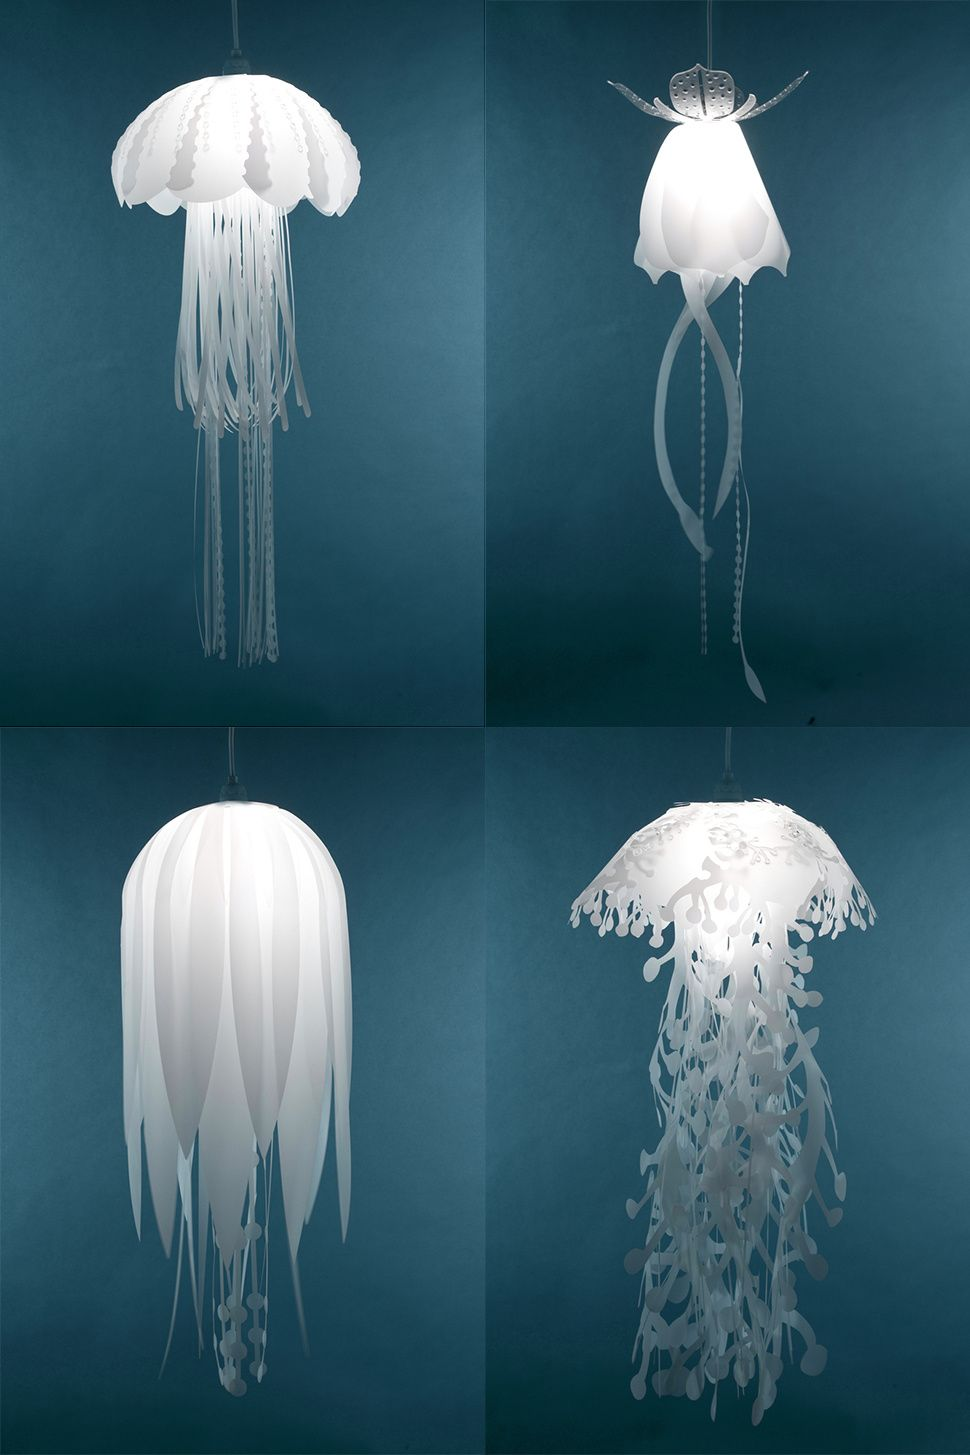 hanging pendant lighting. Coolest Hanging And Pendant Lighting Jellyfish 2 25 Lights For Modern Rooms N